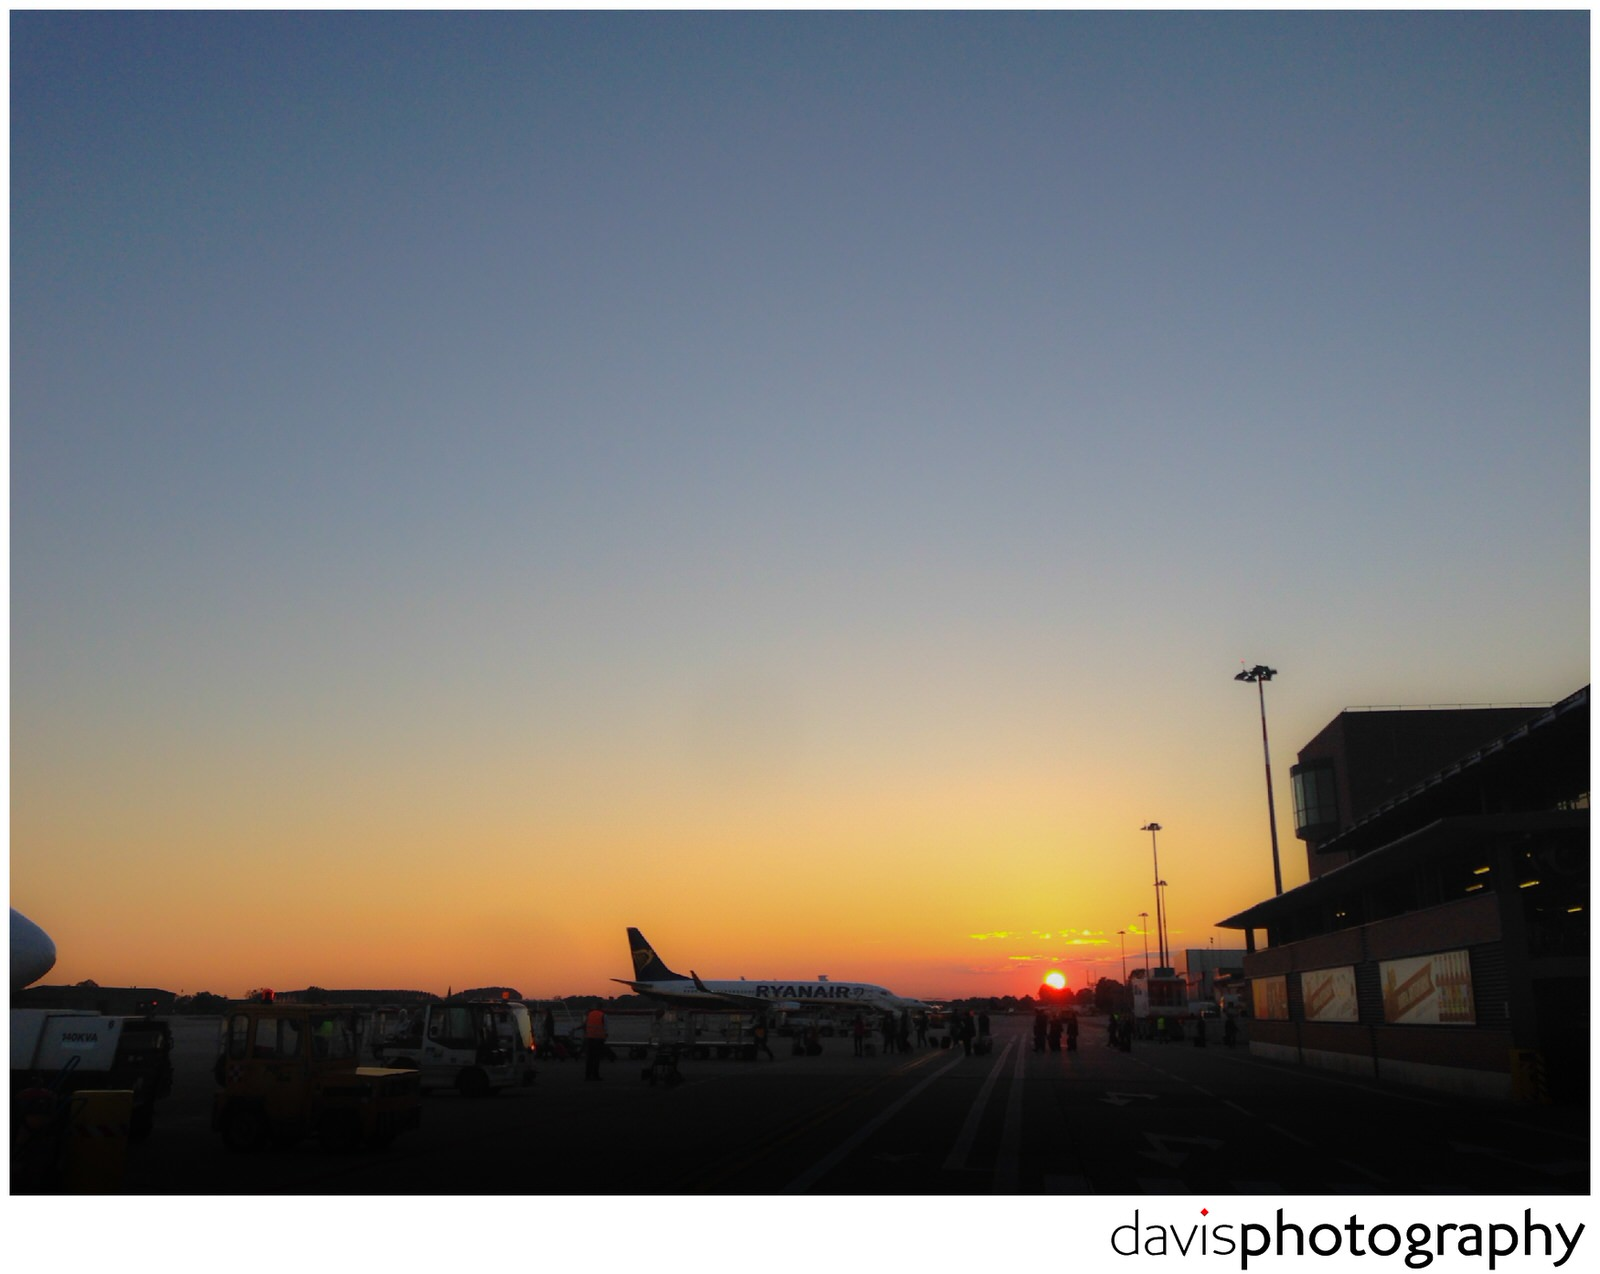 sunset at marco polo airport